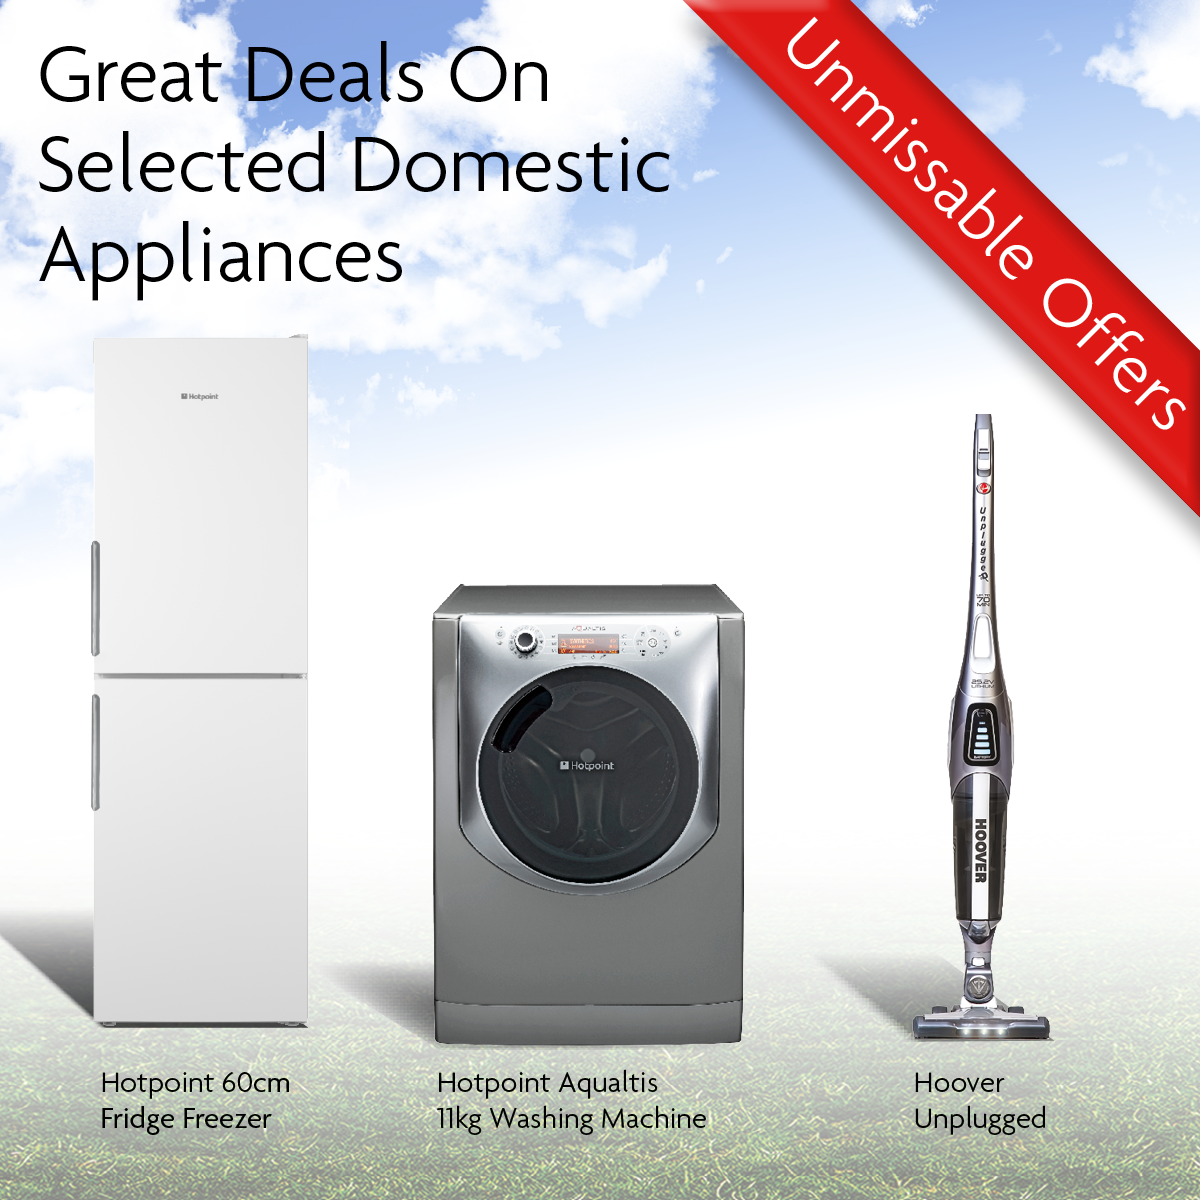 Great Special Offers on Selected Kitchen Appliances | BrightHouse